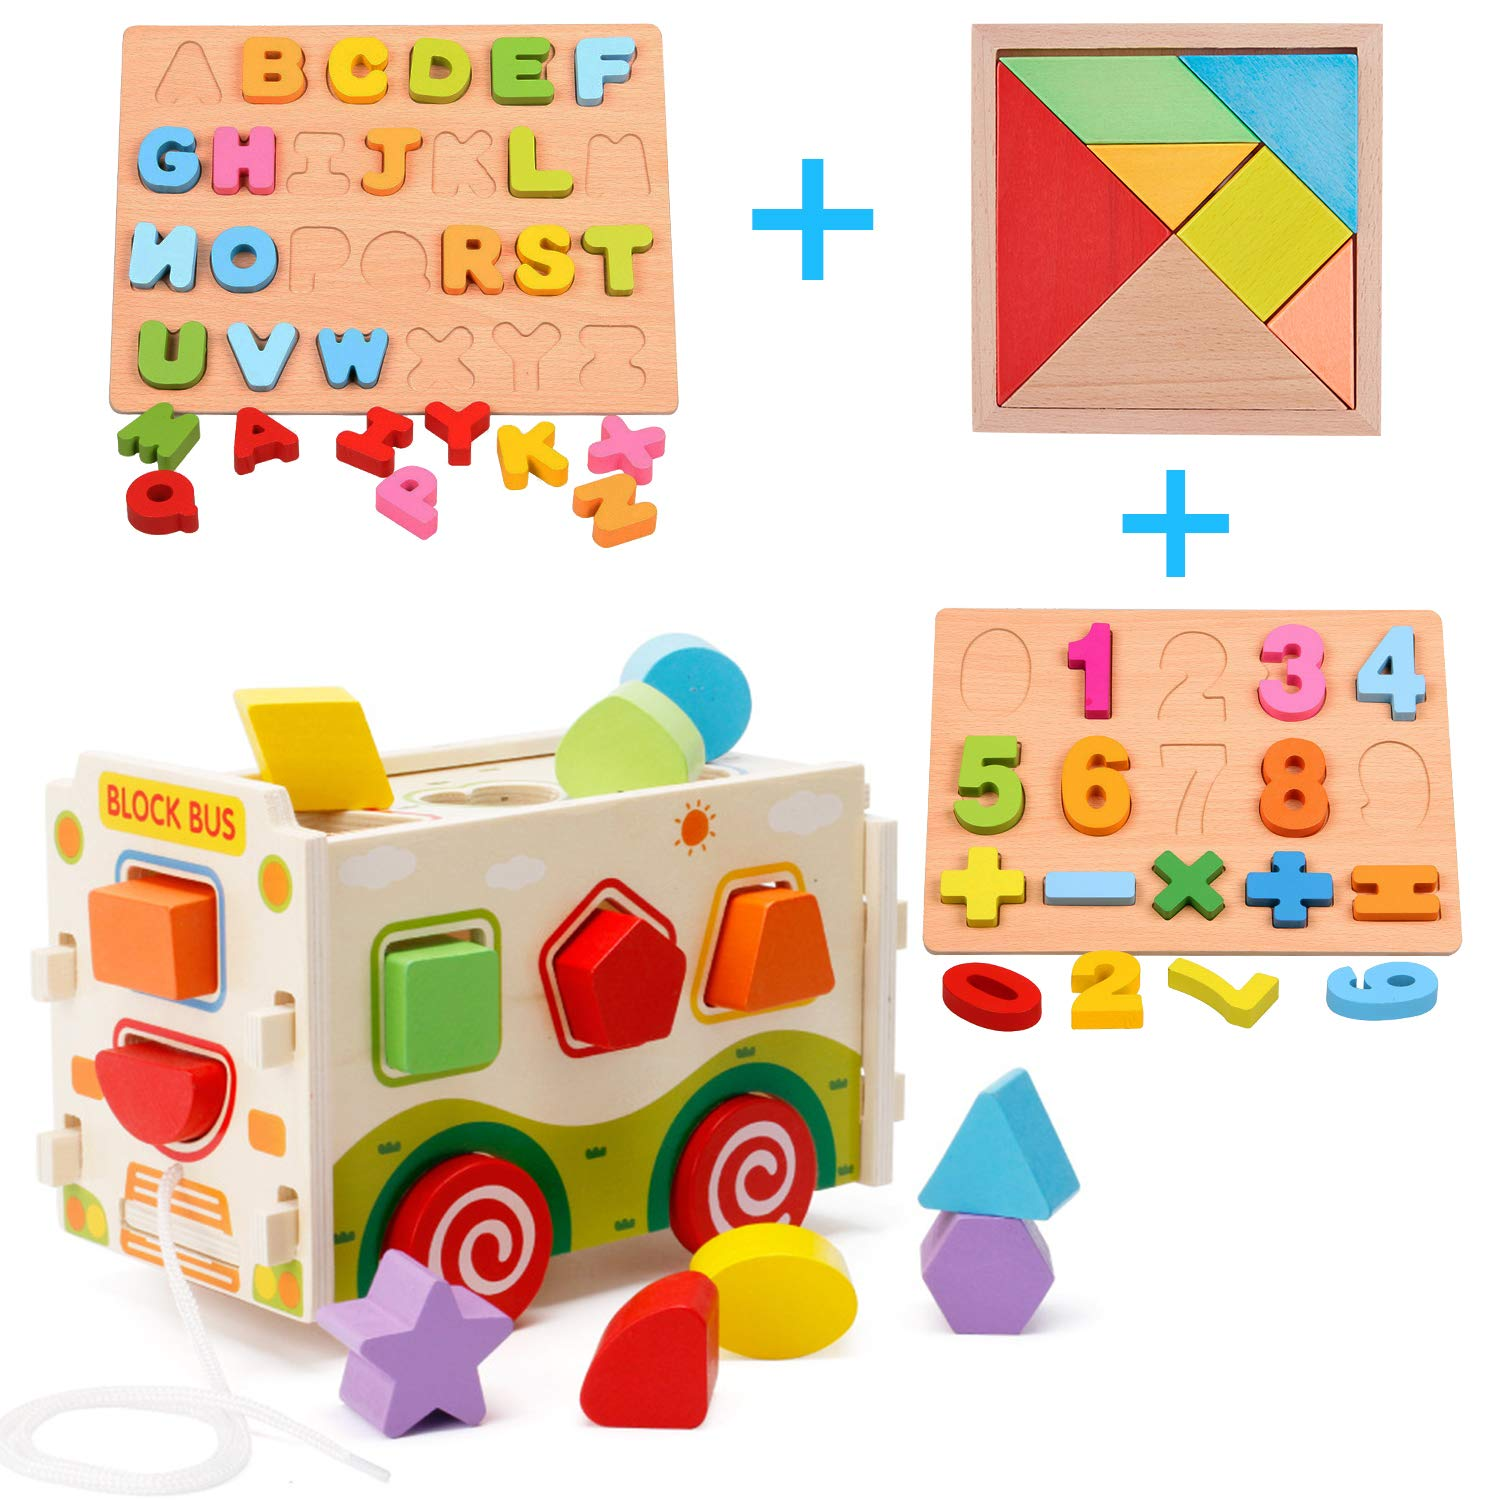 HM-tech Wooden Shape Sorter Toys, Wooden Shape Sorter Bus with Tangram & Number Alphabet Puzzle Board, Classic 3D Push Pull Truck Toy for Toddlers Learning Sort and Match for Kids